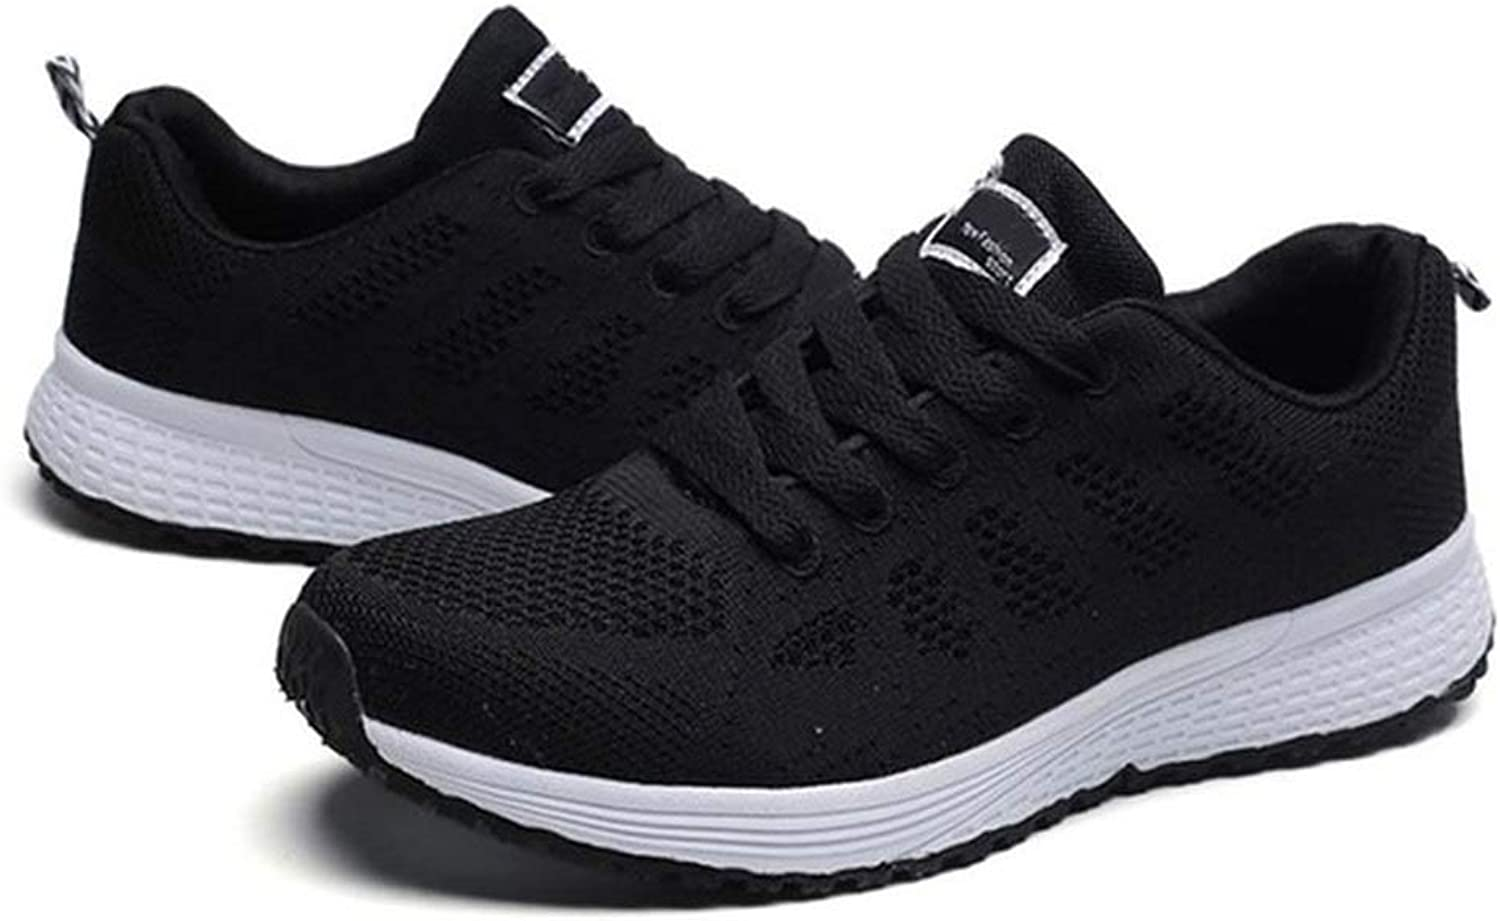 best mizuno shoes for walking exercise lady upside down lace